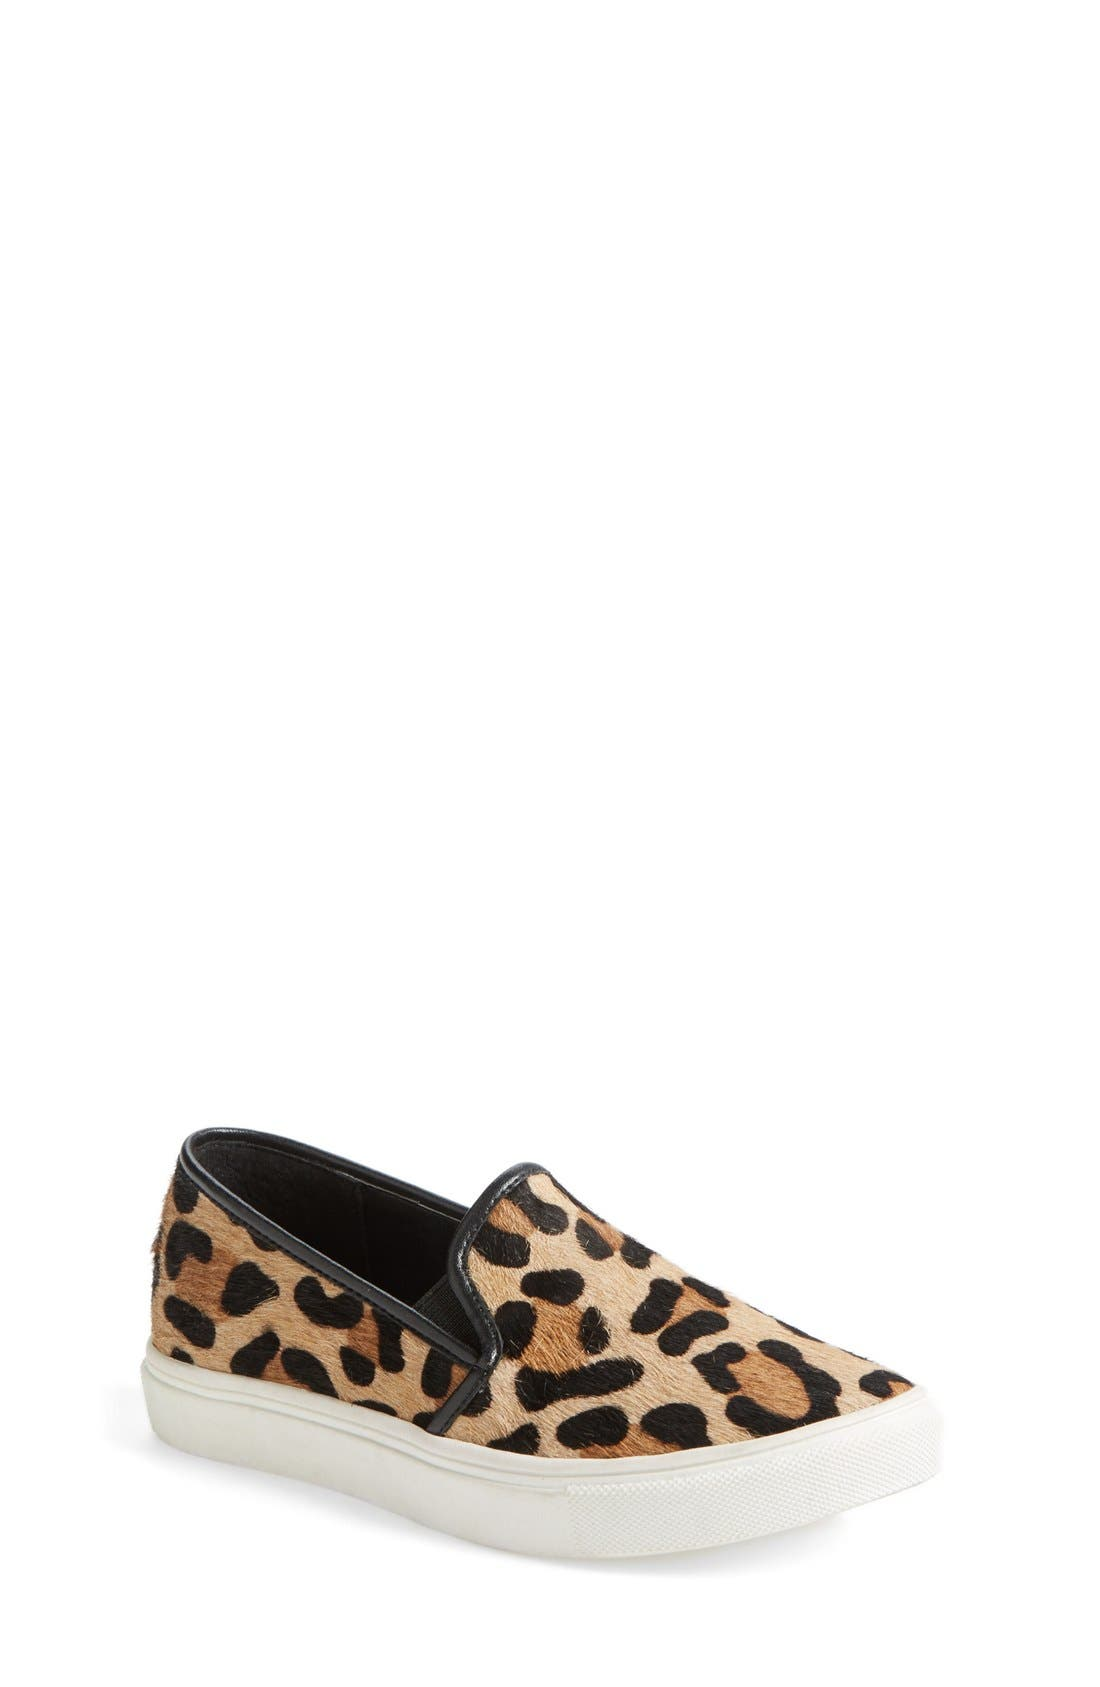 Alternate Image 1 Selected - Steve Madden 'Ecntric' Calf Hair Slip-On (Little Kid & Big Kid)